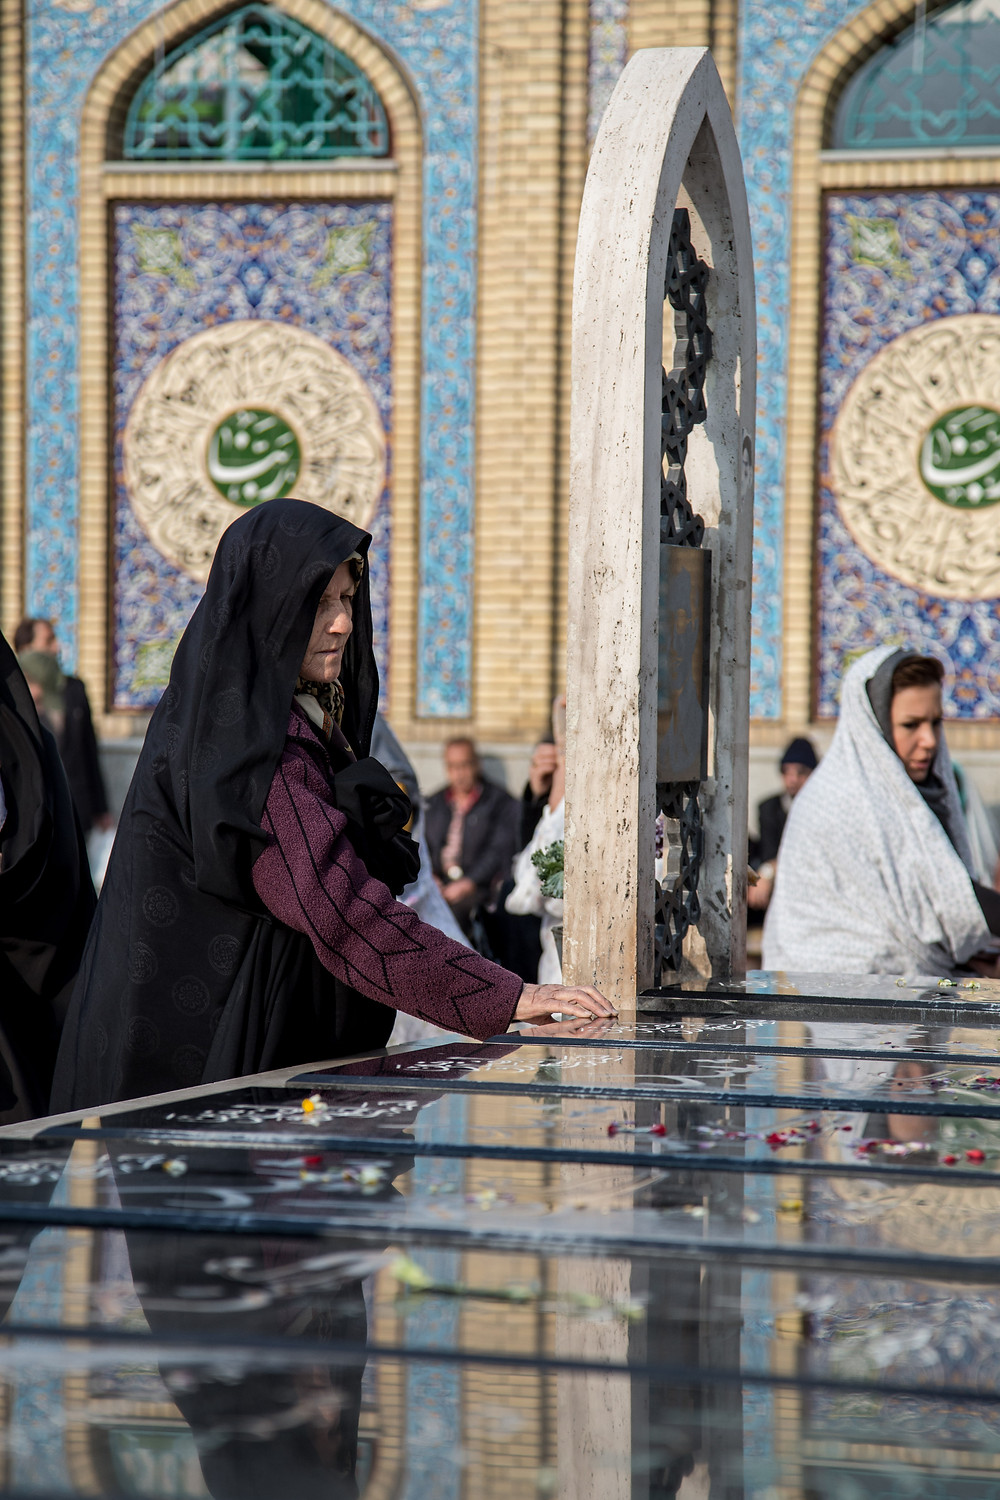 Women praying at Imamzadeh Saleh, Shemiran